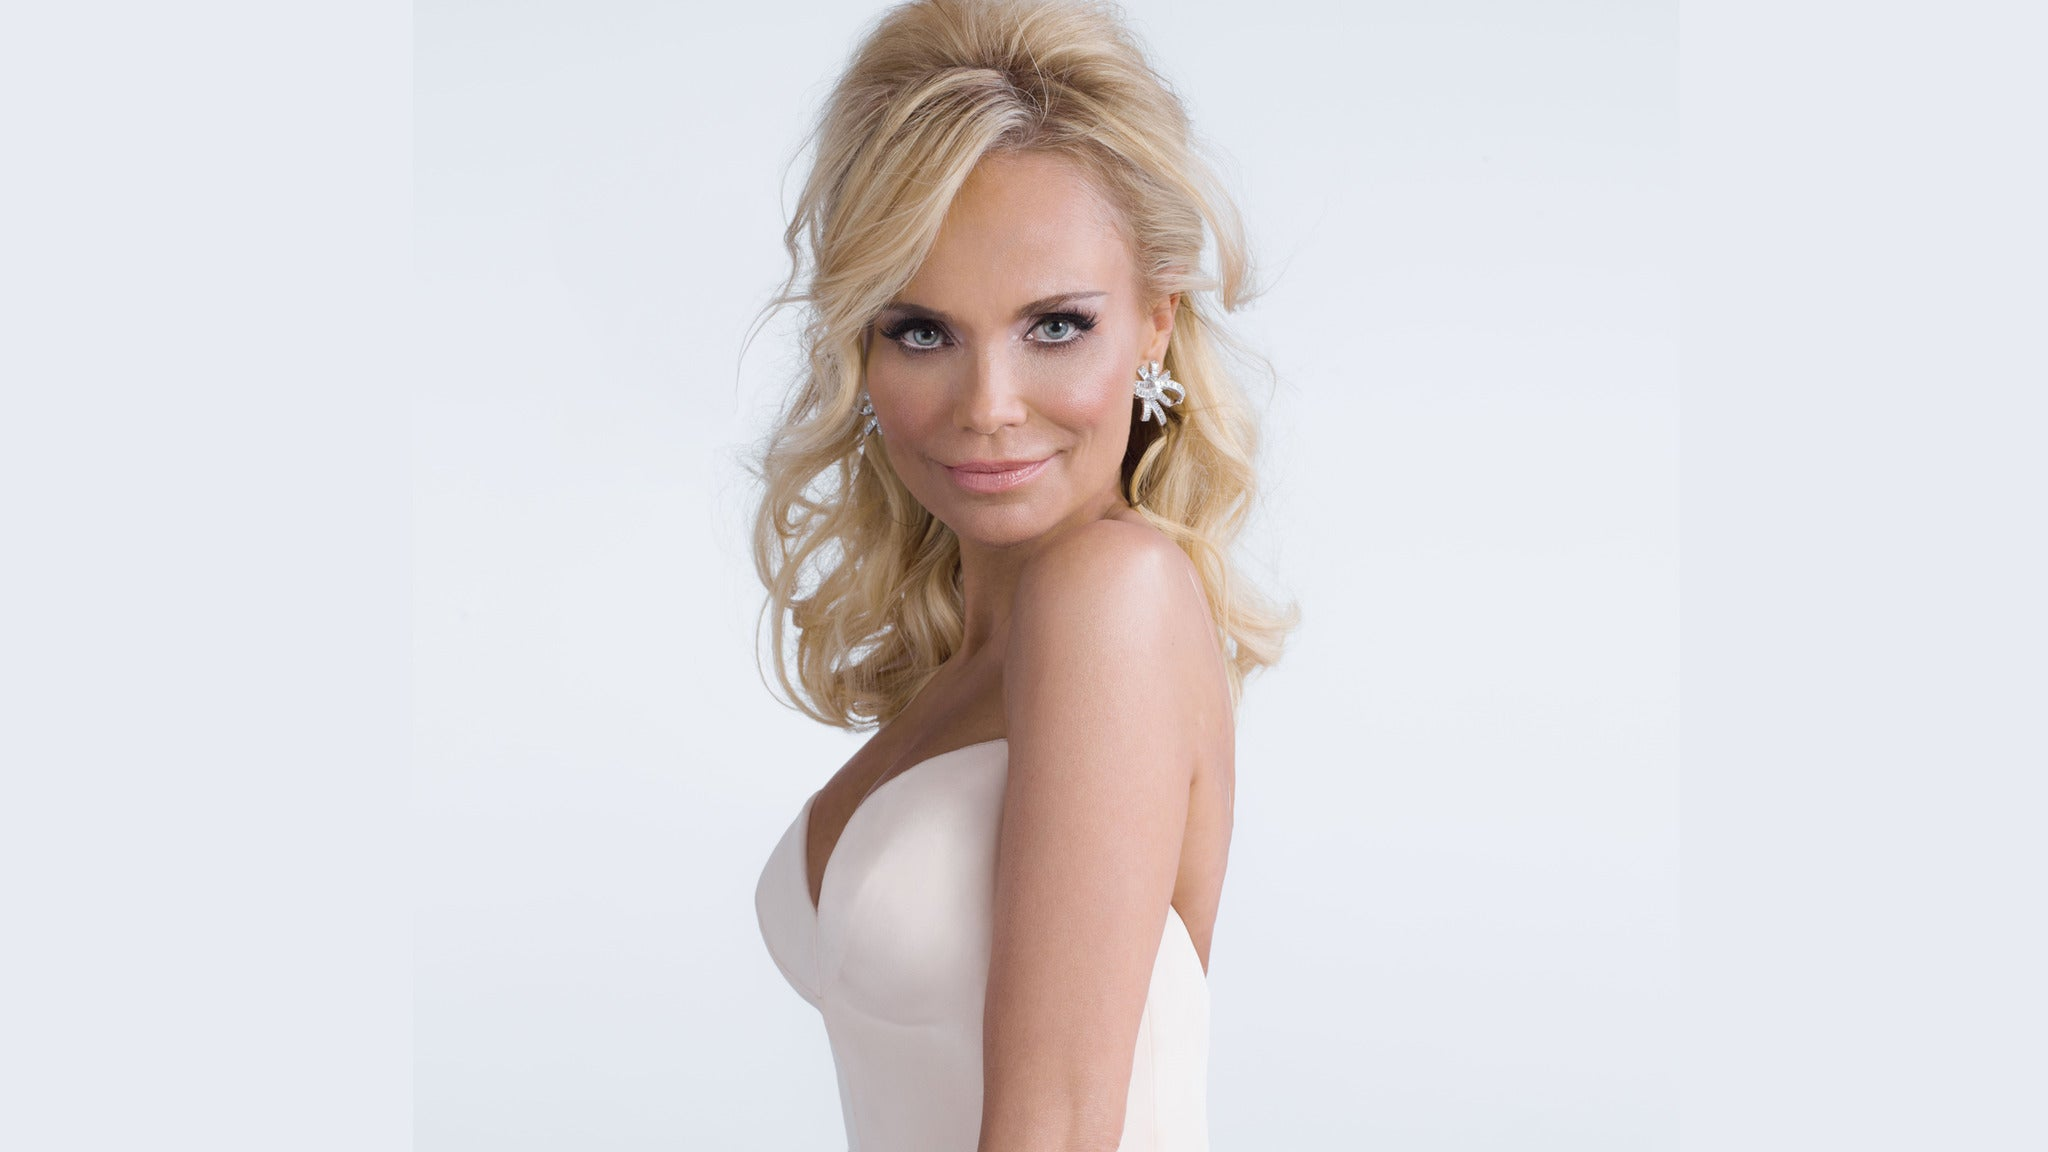 Kristin Chenoweth at McCallum Theatre - Palm Desert, CA 92260